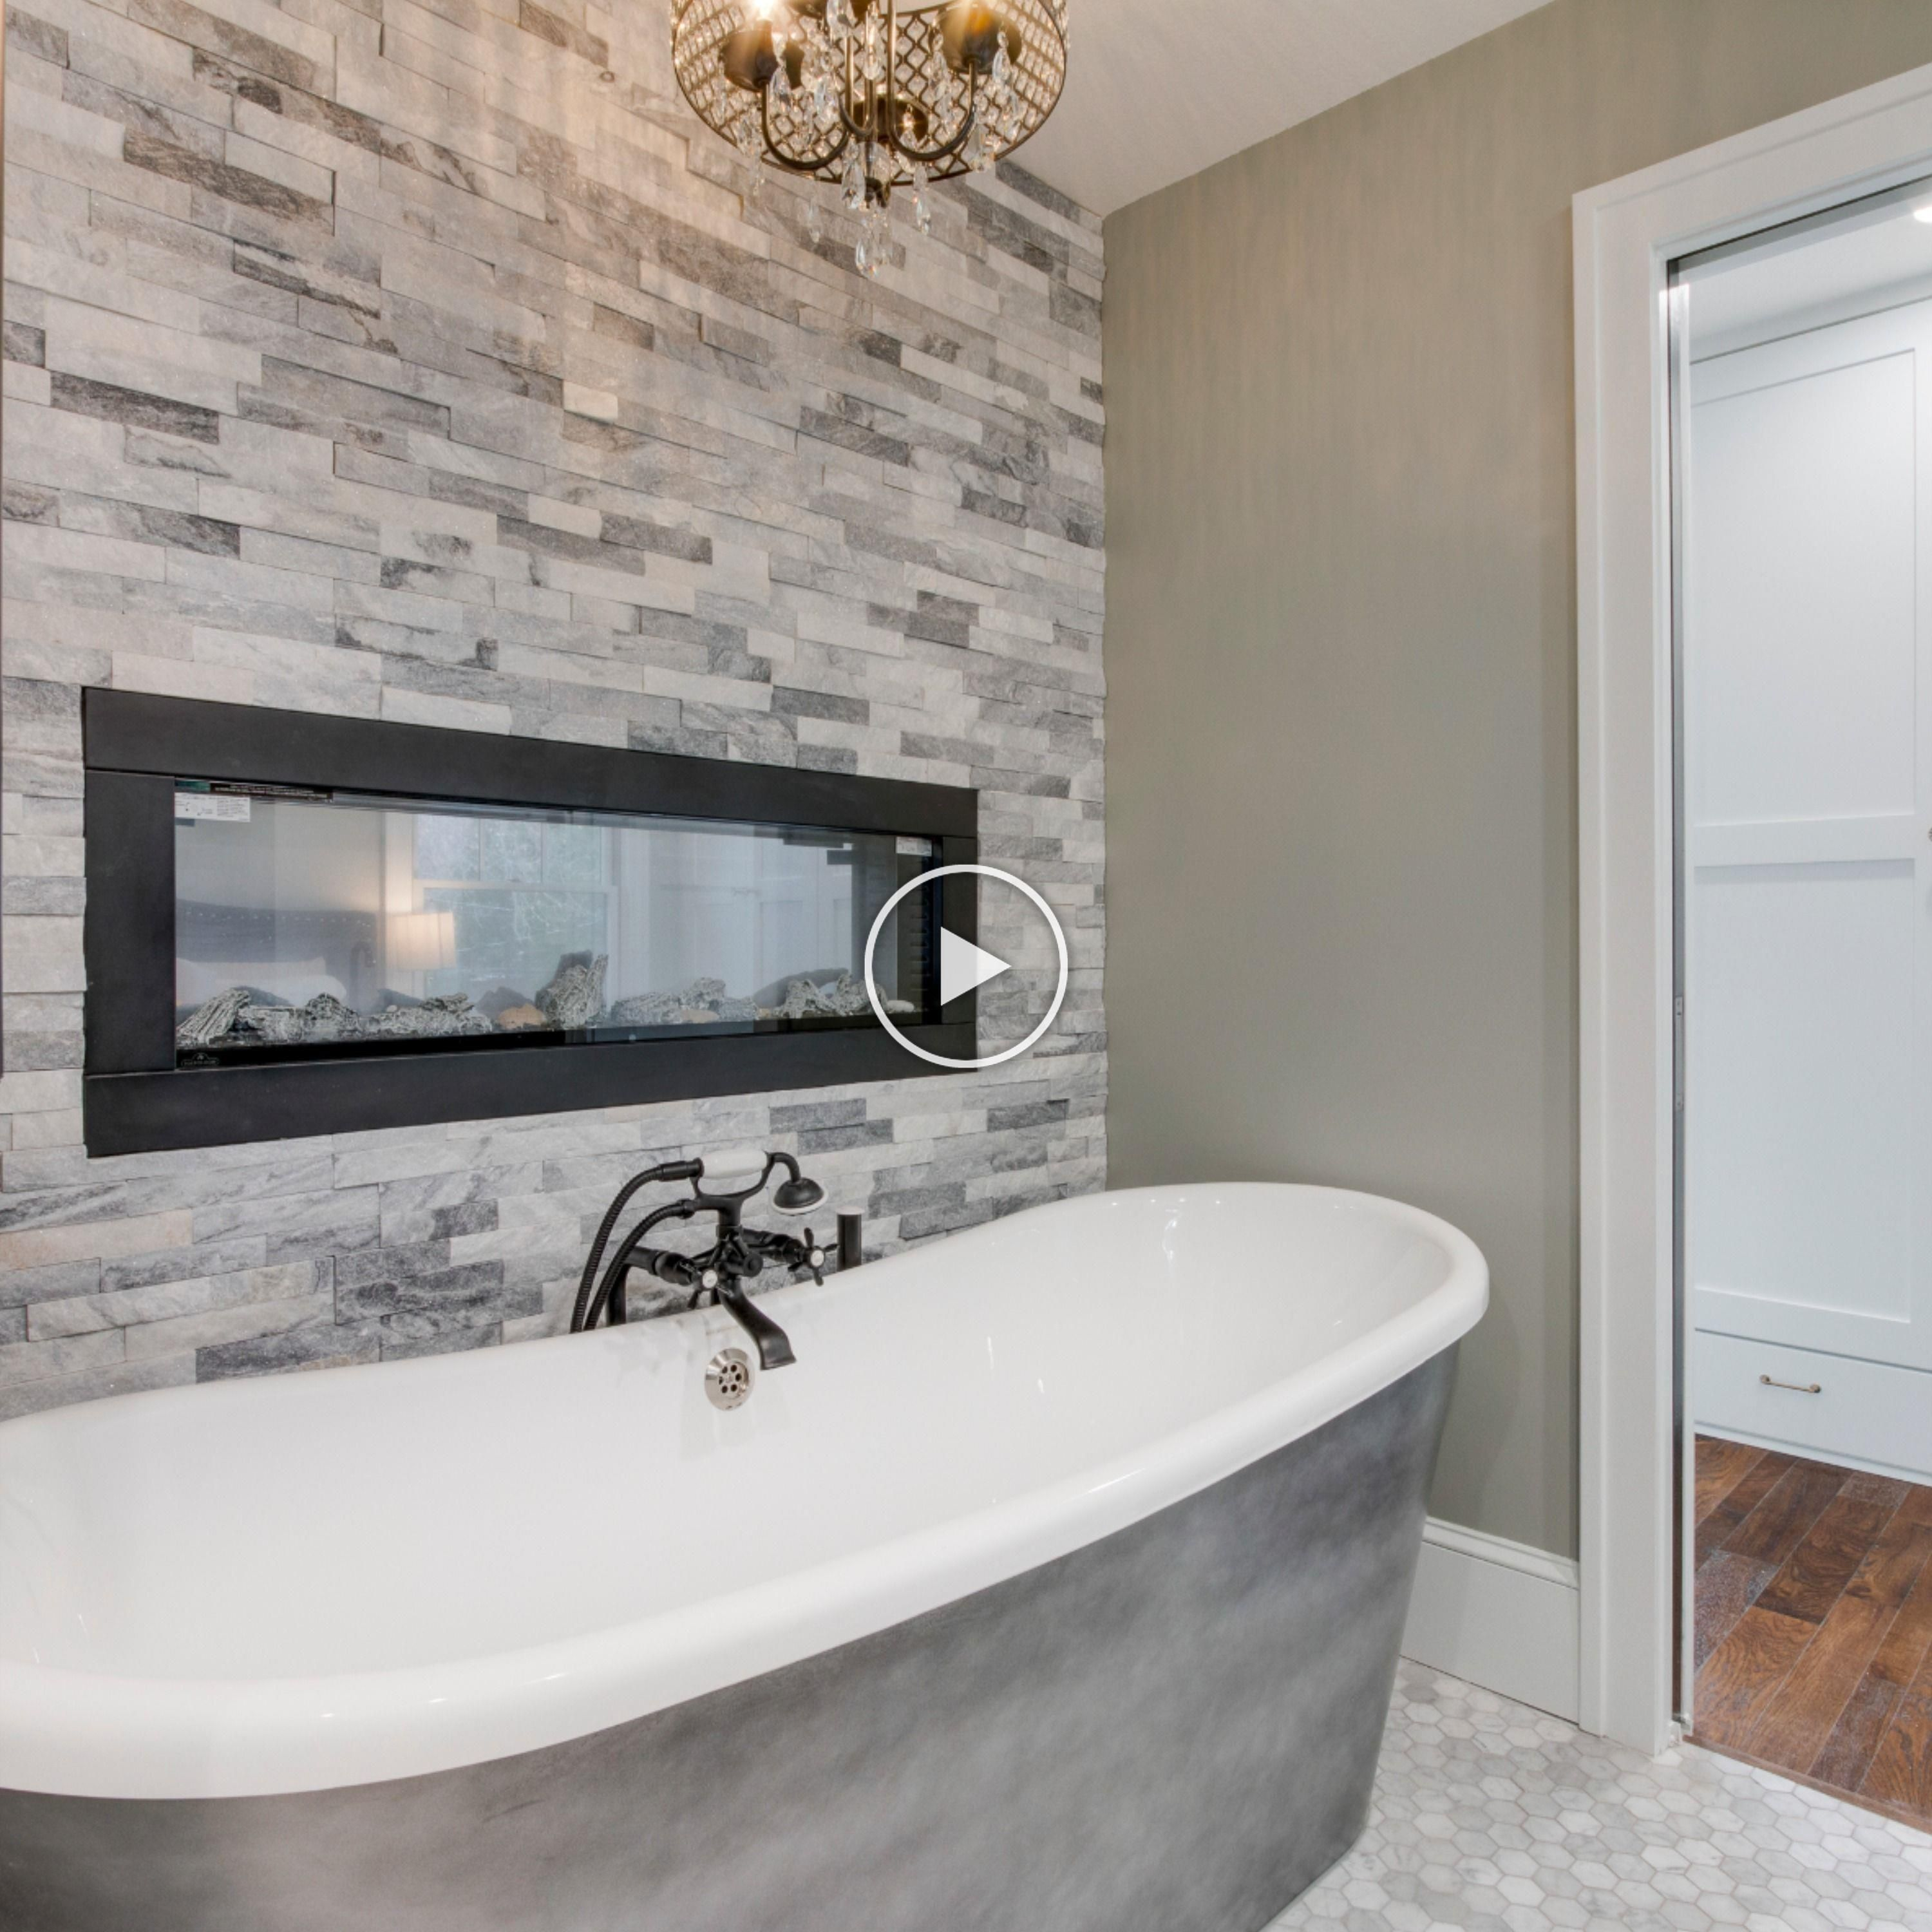 The Master Bathroom Of Our Home Addition Includes A Fireplace Over